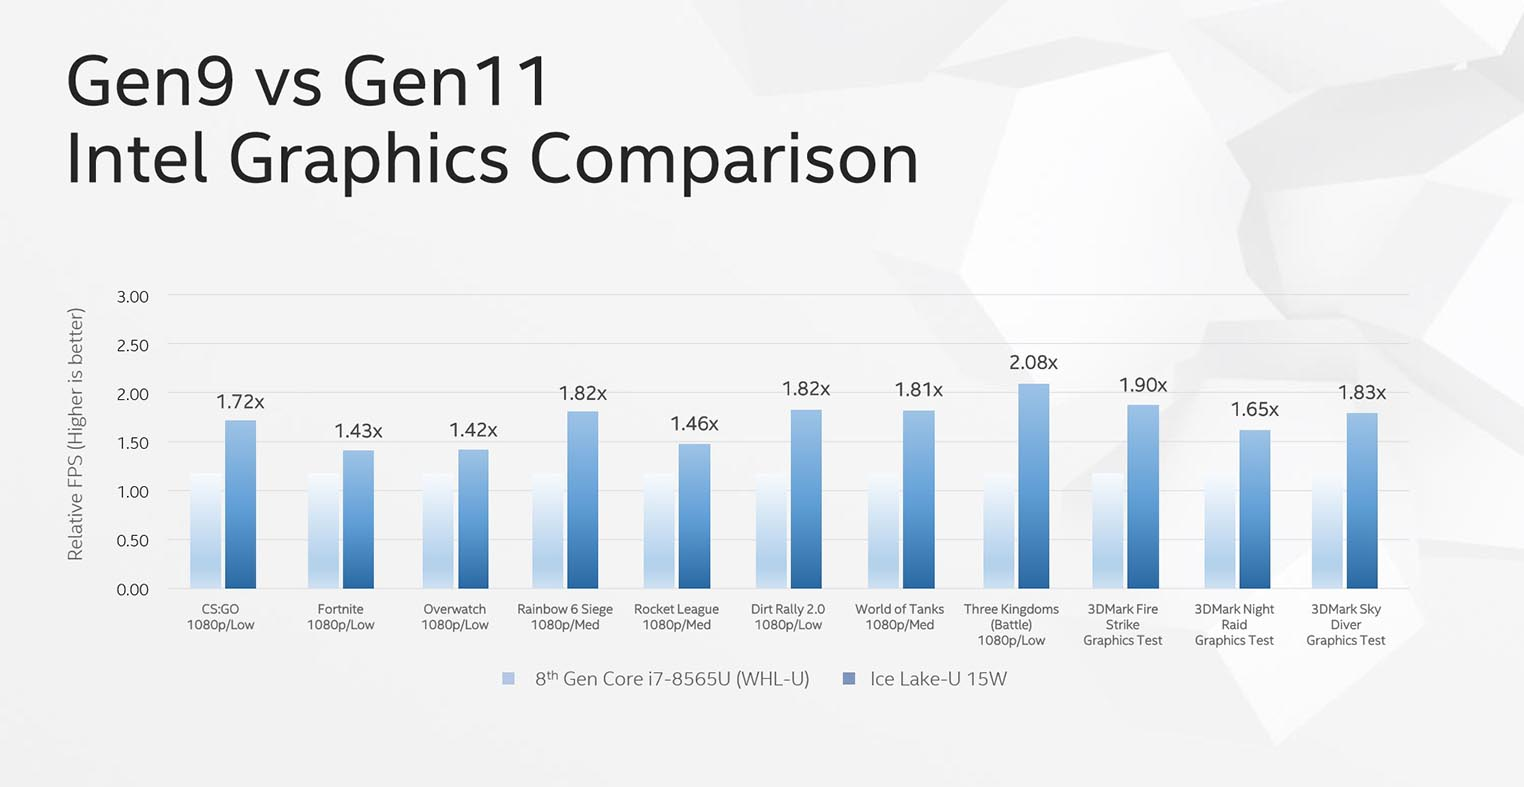 Ice Lake Gen11 graphics performance